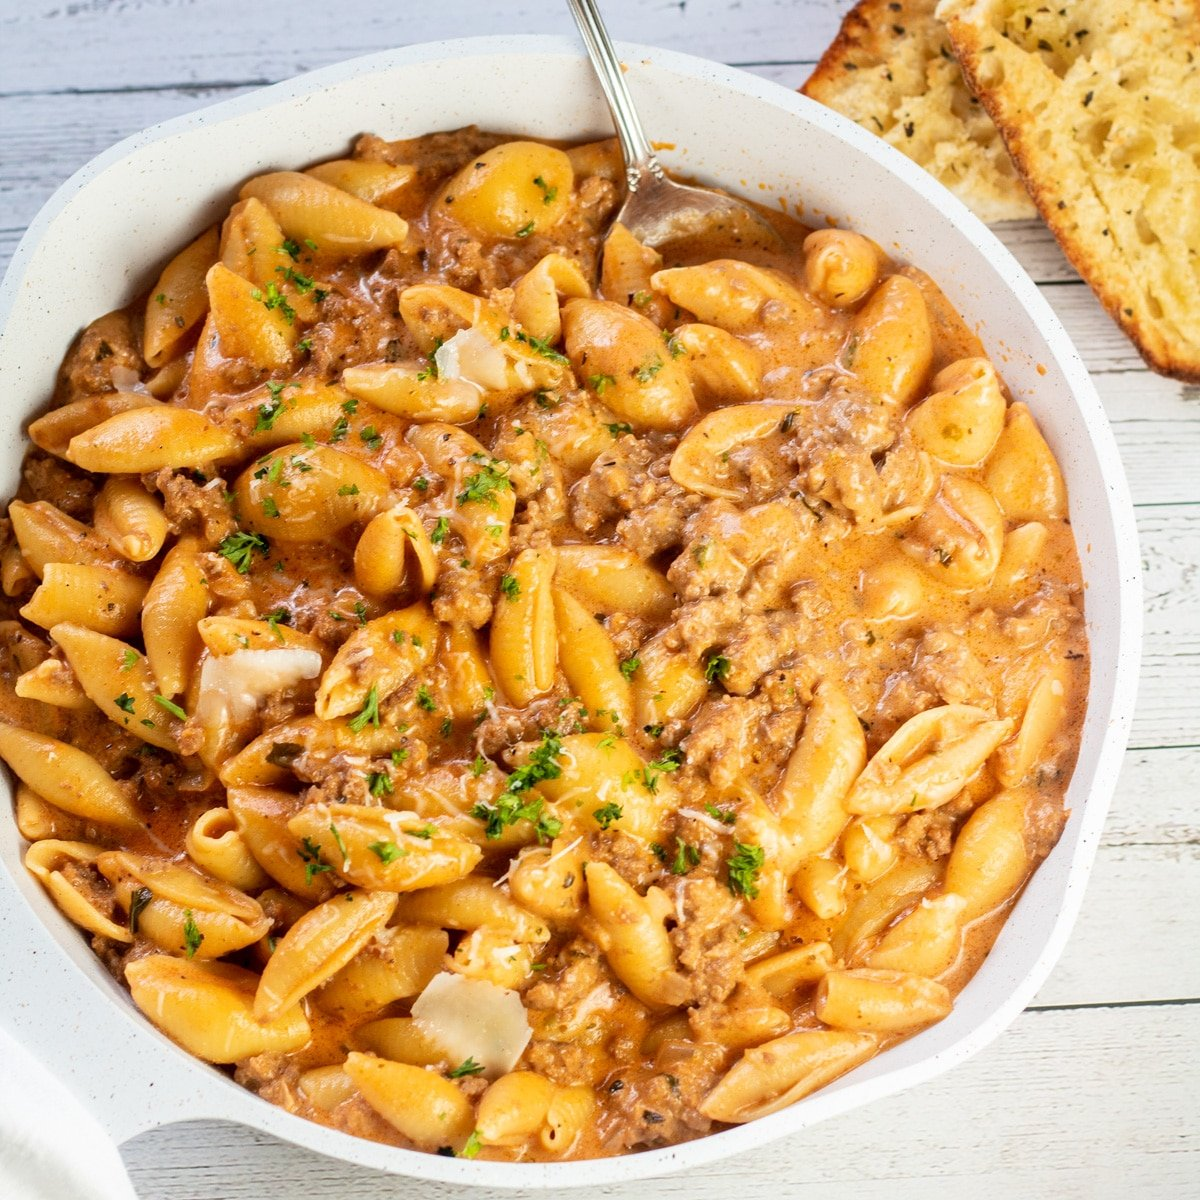 Creamy beef and shells with parsley garnish and garlic bread ready to serve.